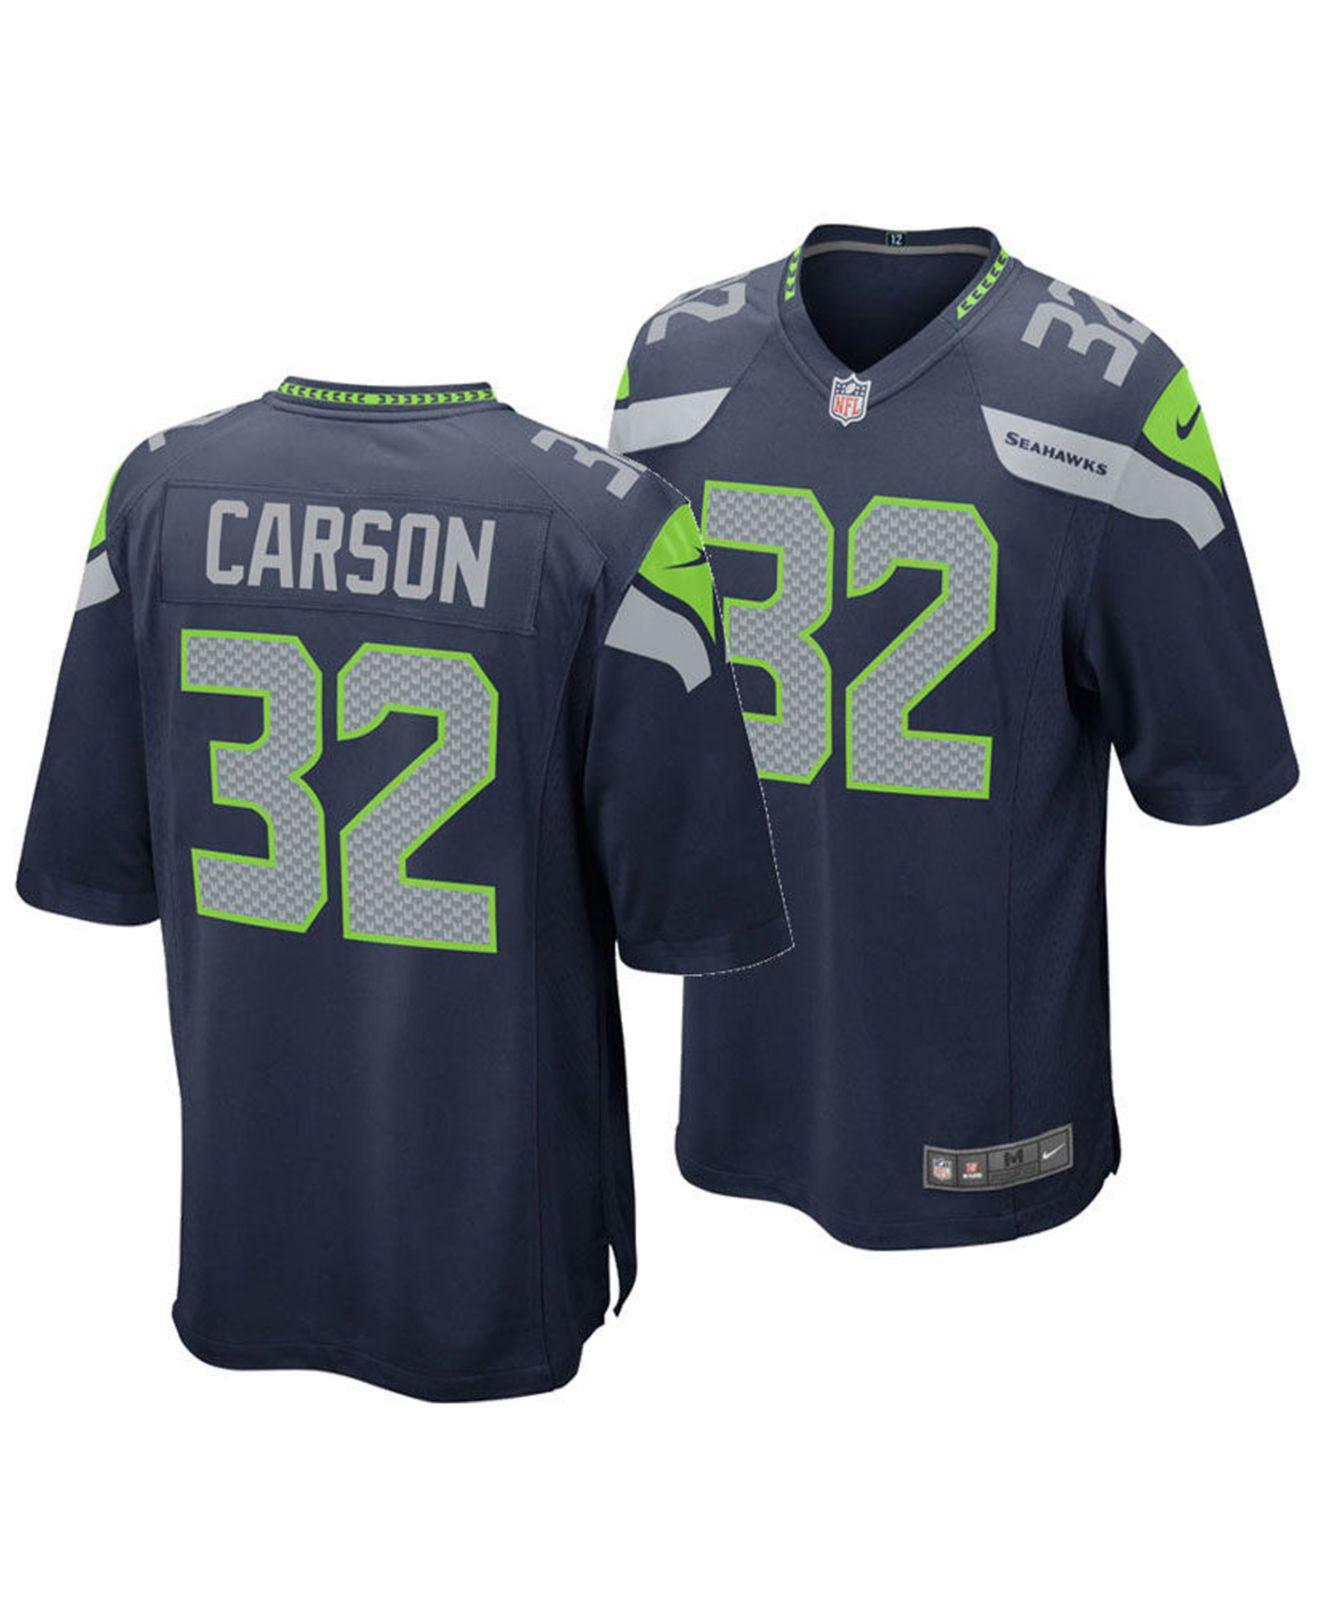 Lyst - Nike Chris Carson Seattle Seahawks Game Jersey in Blue for Men 3a823bb6f